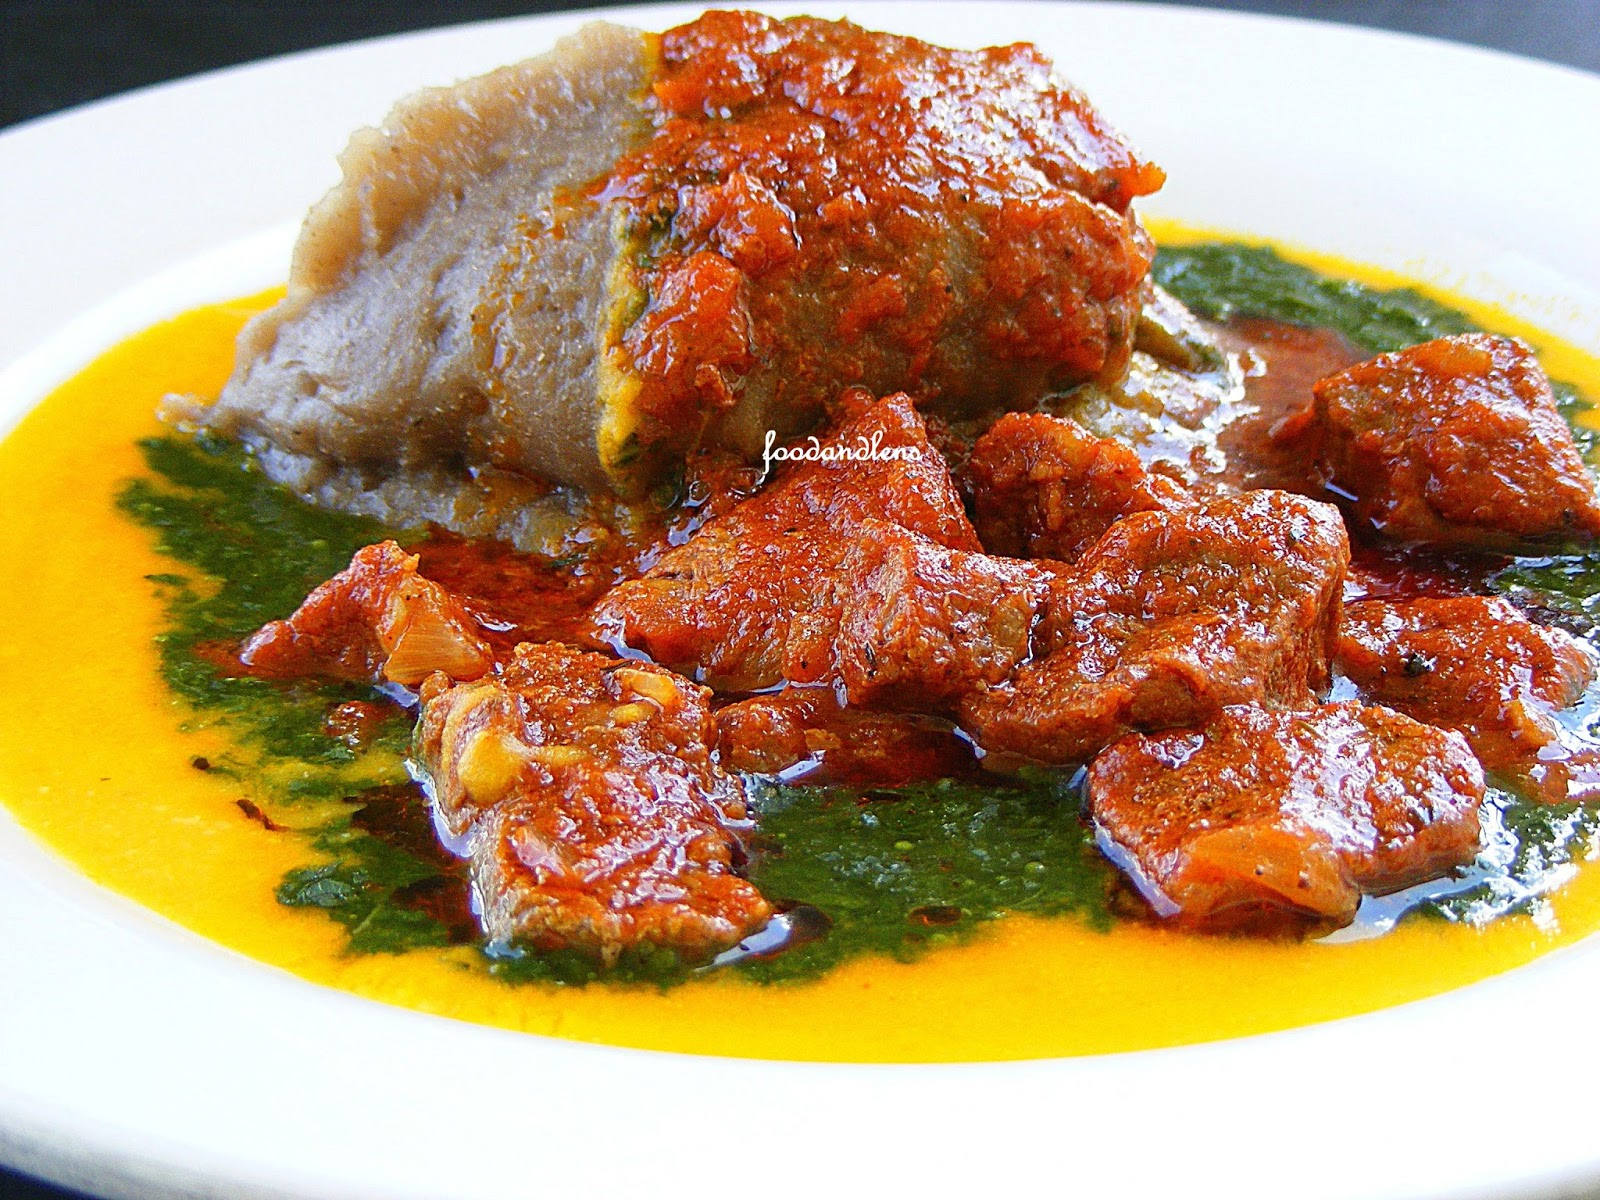 amala-ewedu-and-gbegiri food